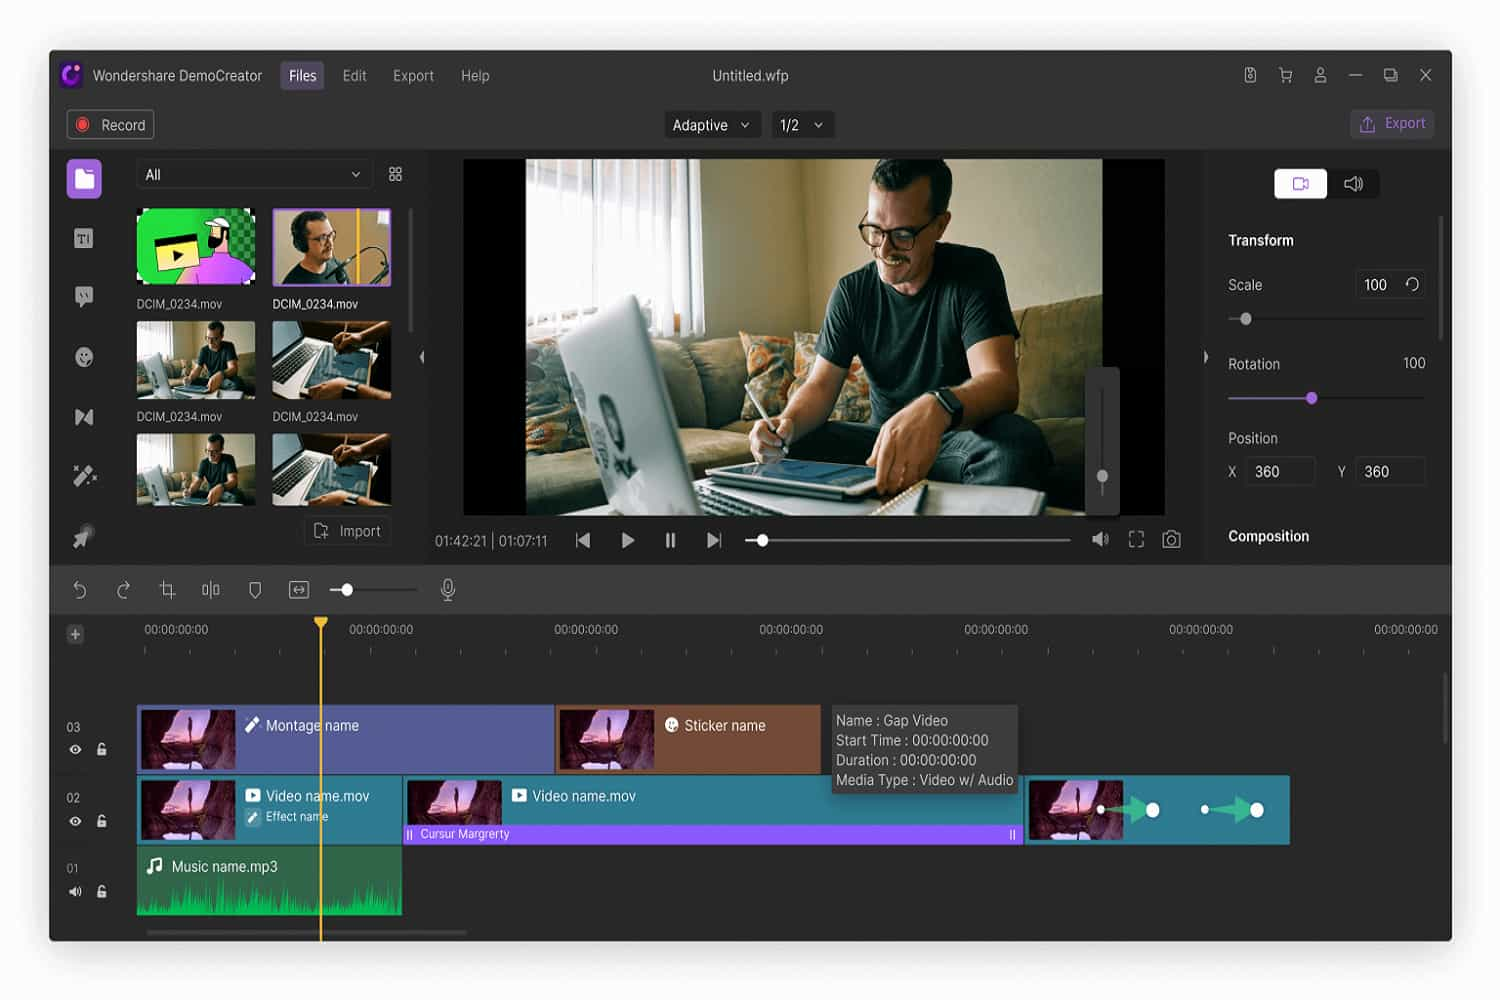 The Best Free Screen Recorder and Video Editor For 2020